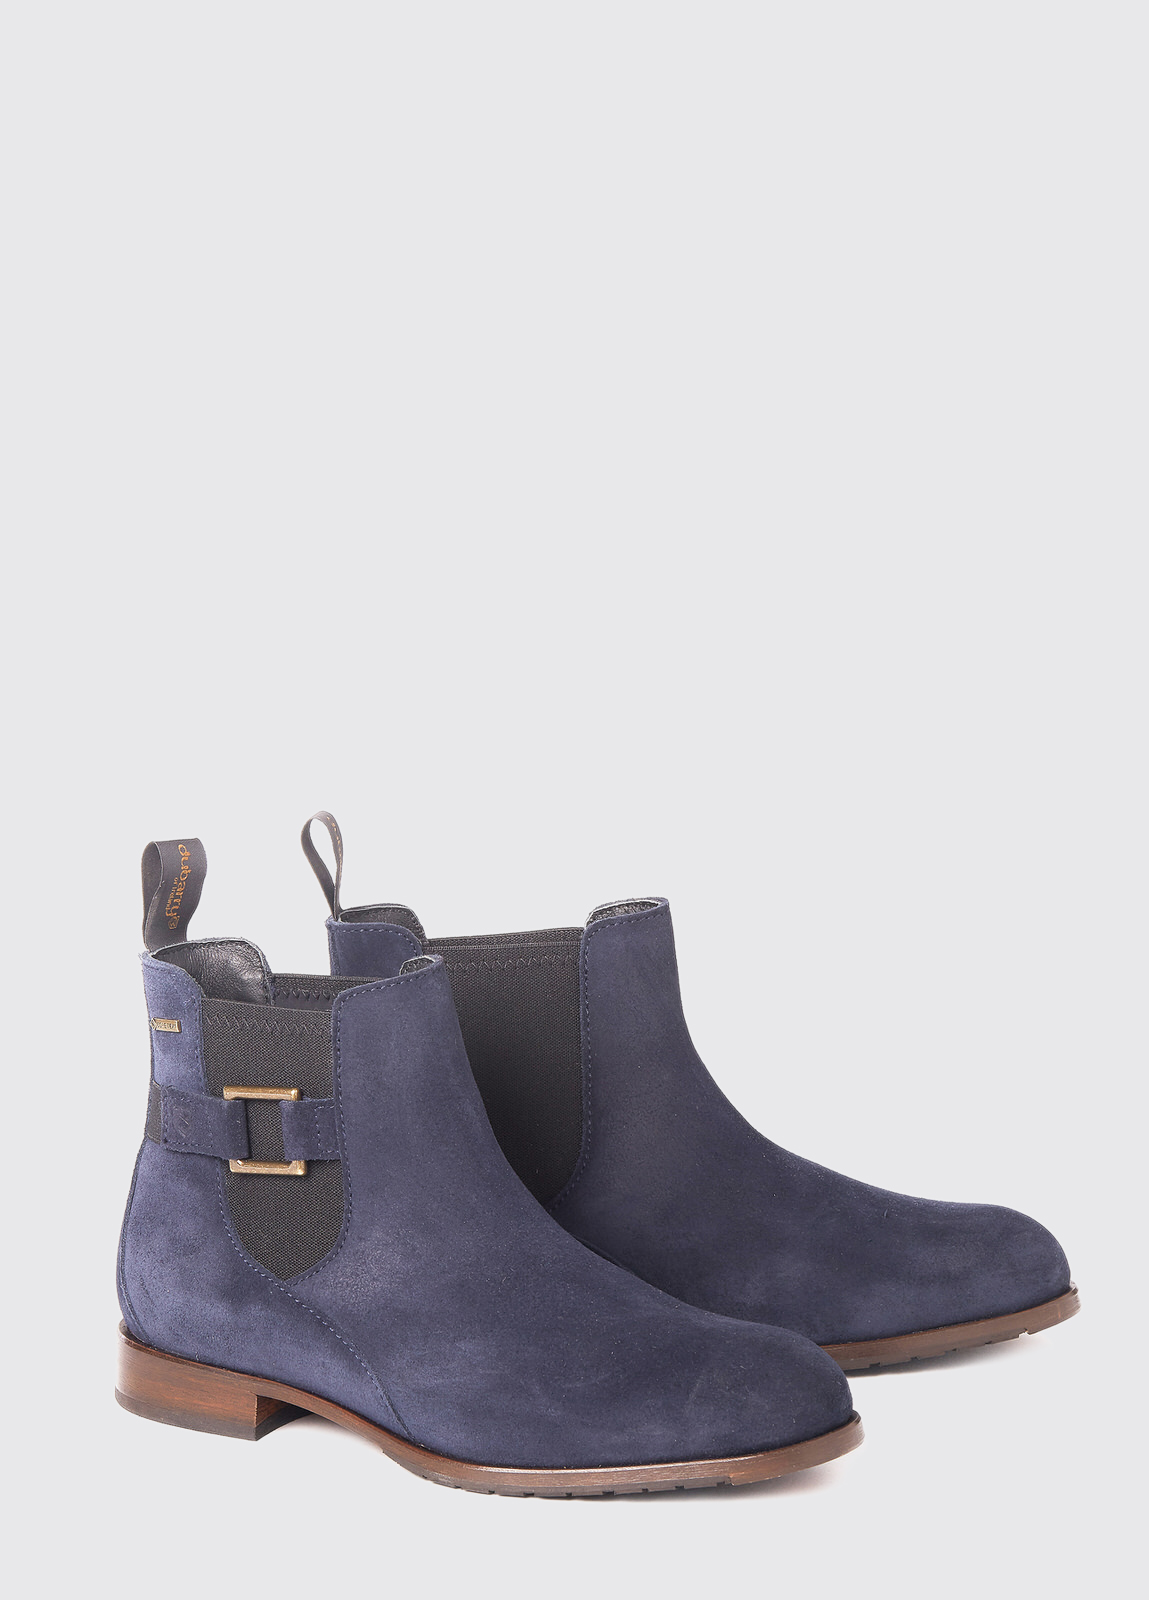 Monaghan Leather Soled Boot - French Navy